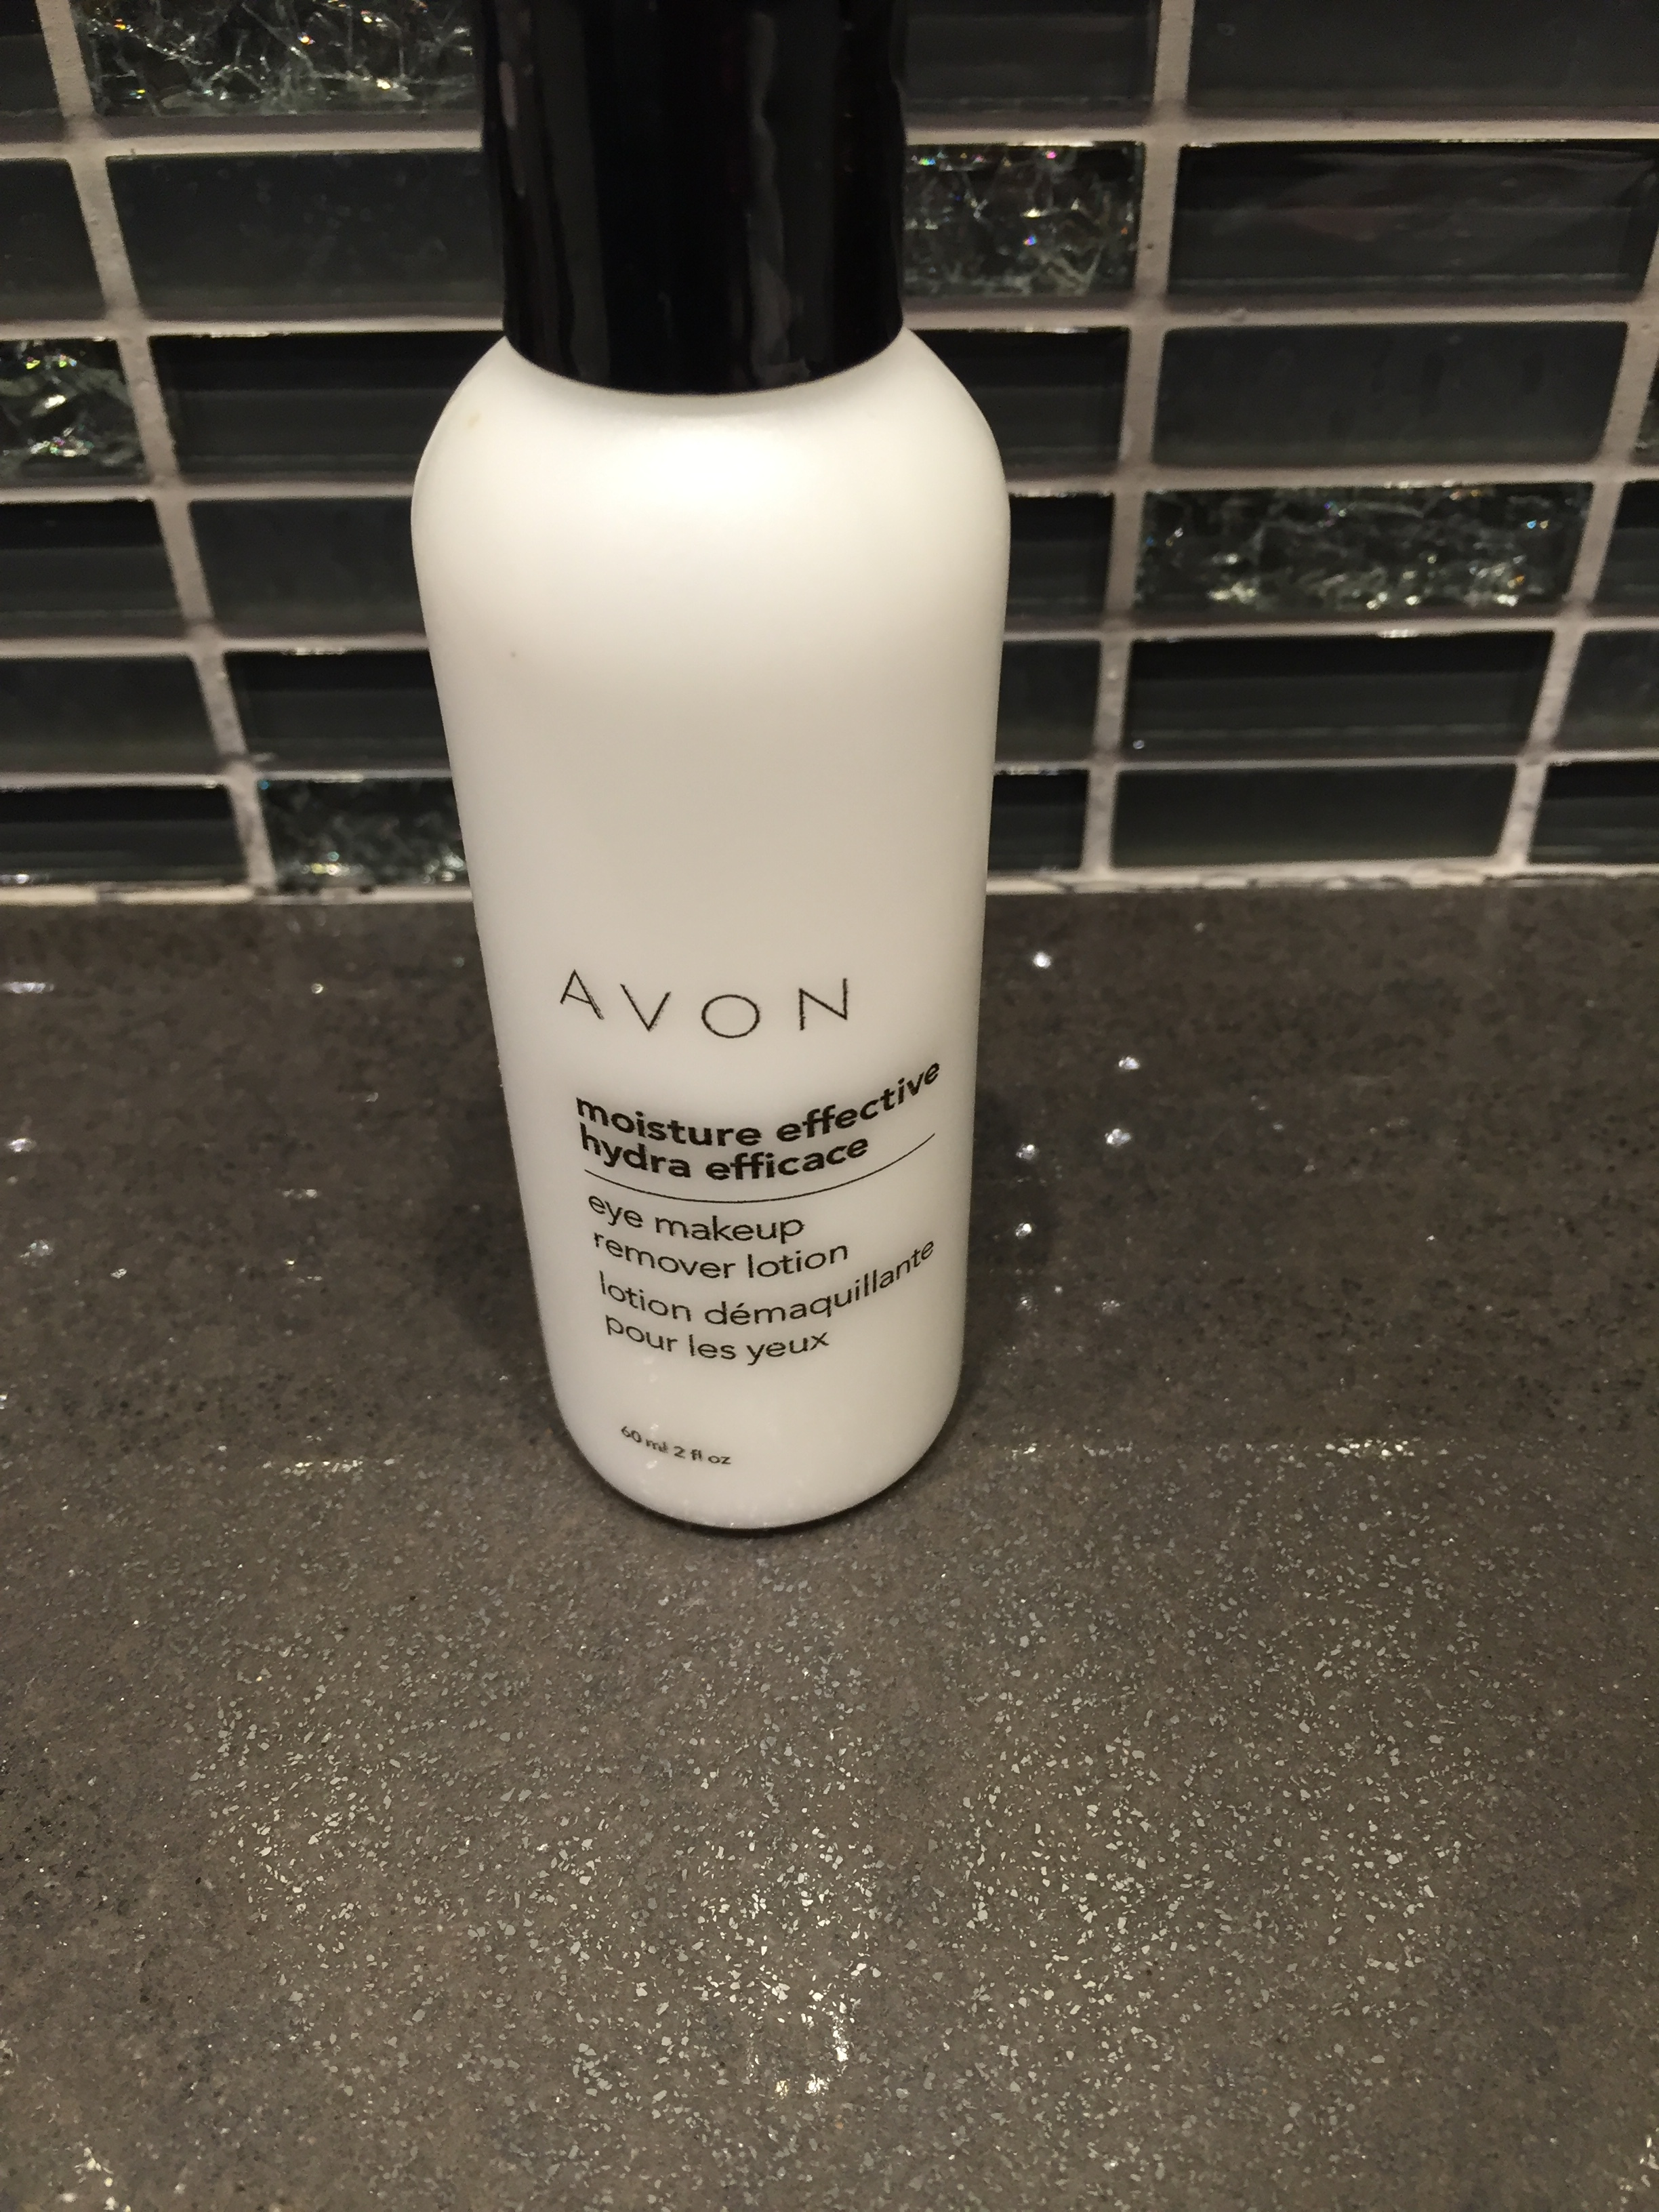 Avon Moisture Effective Eye Makeup Remover Lotion Reviews In Makeup